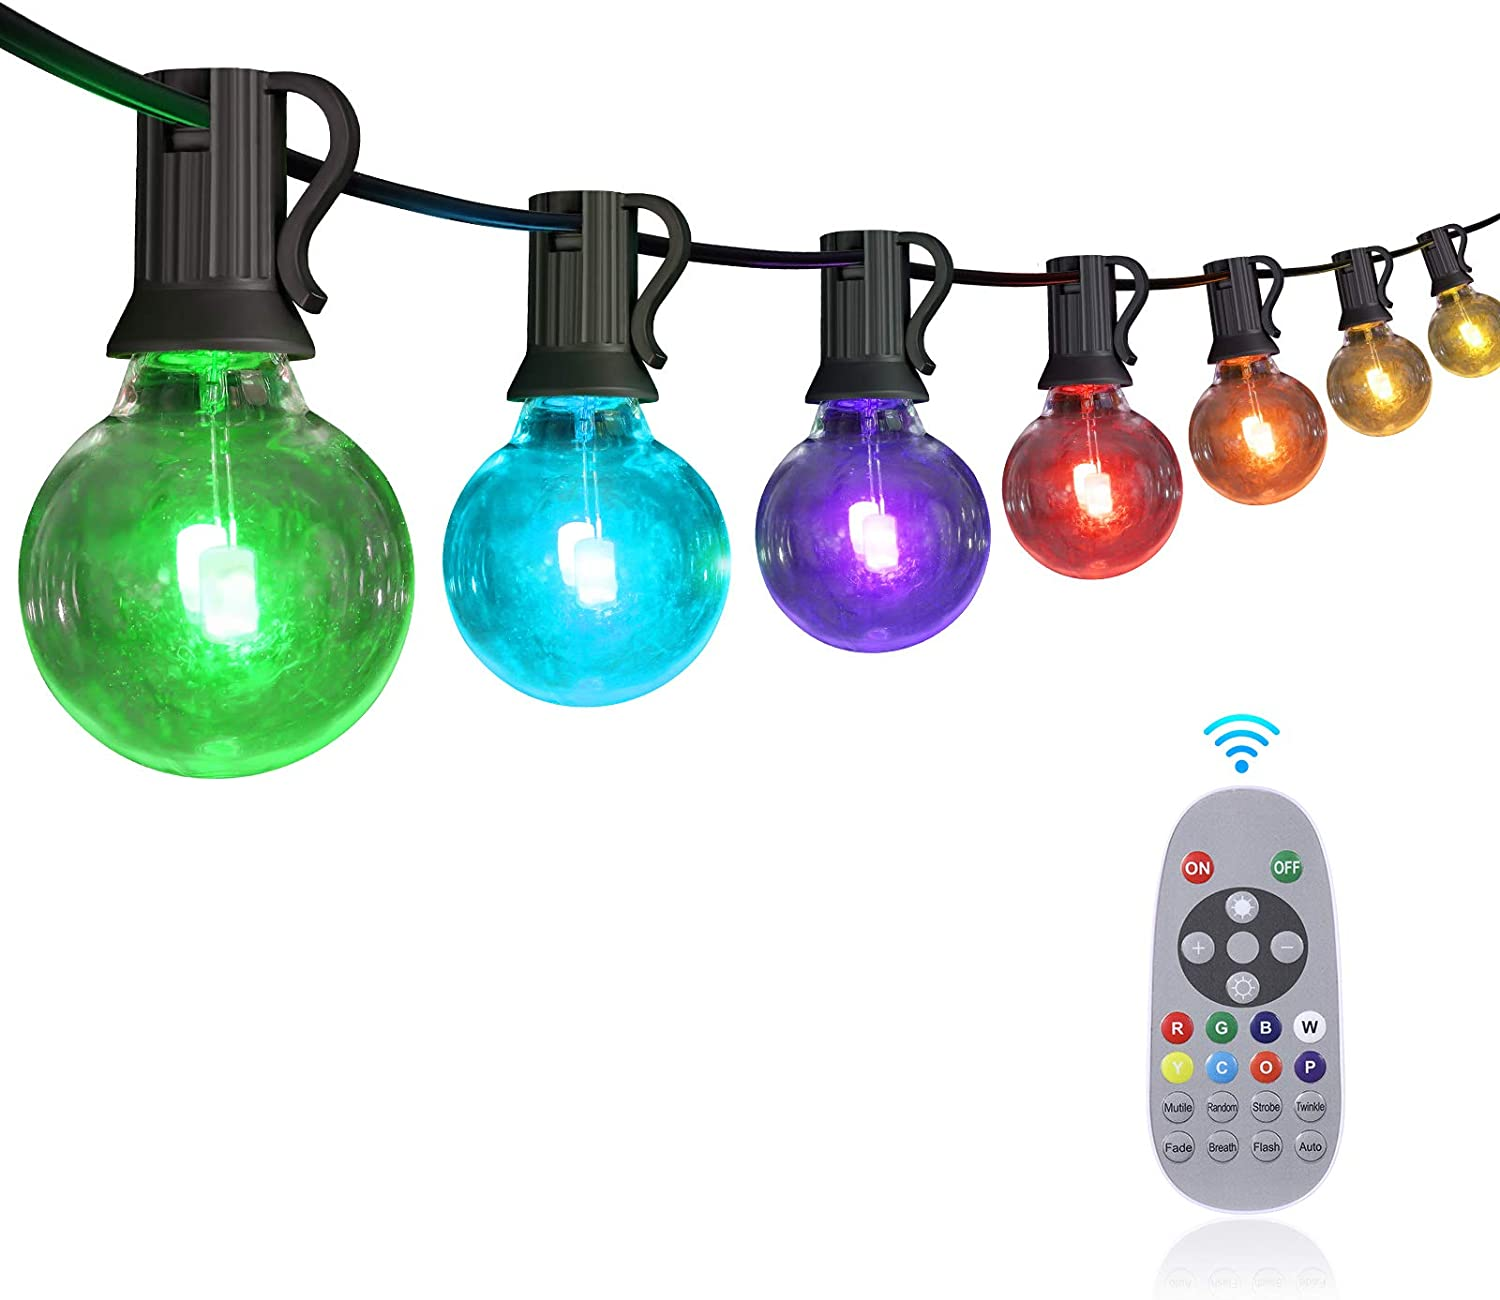 YUNLIGHTS 50FT Color Changing Outdoor String Lights, RGB LED String Lights with 30+3 G40 Globe Bulbs,Dimmable Waterproof String Lights with Remote Control for Christmas, Patio, Cafe, Backyard, Garden